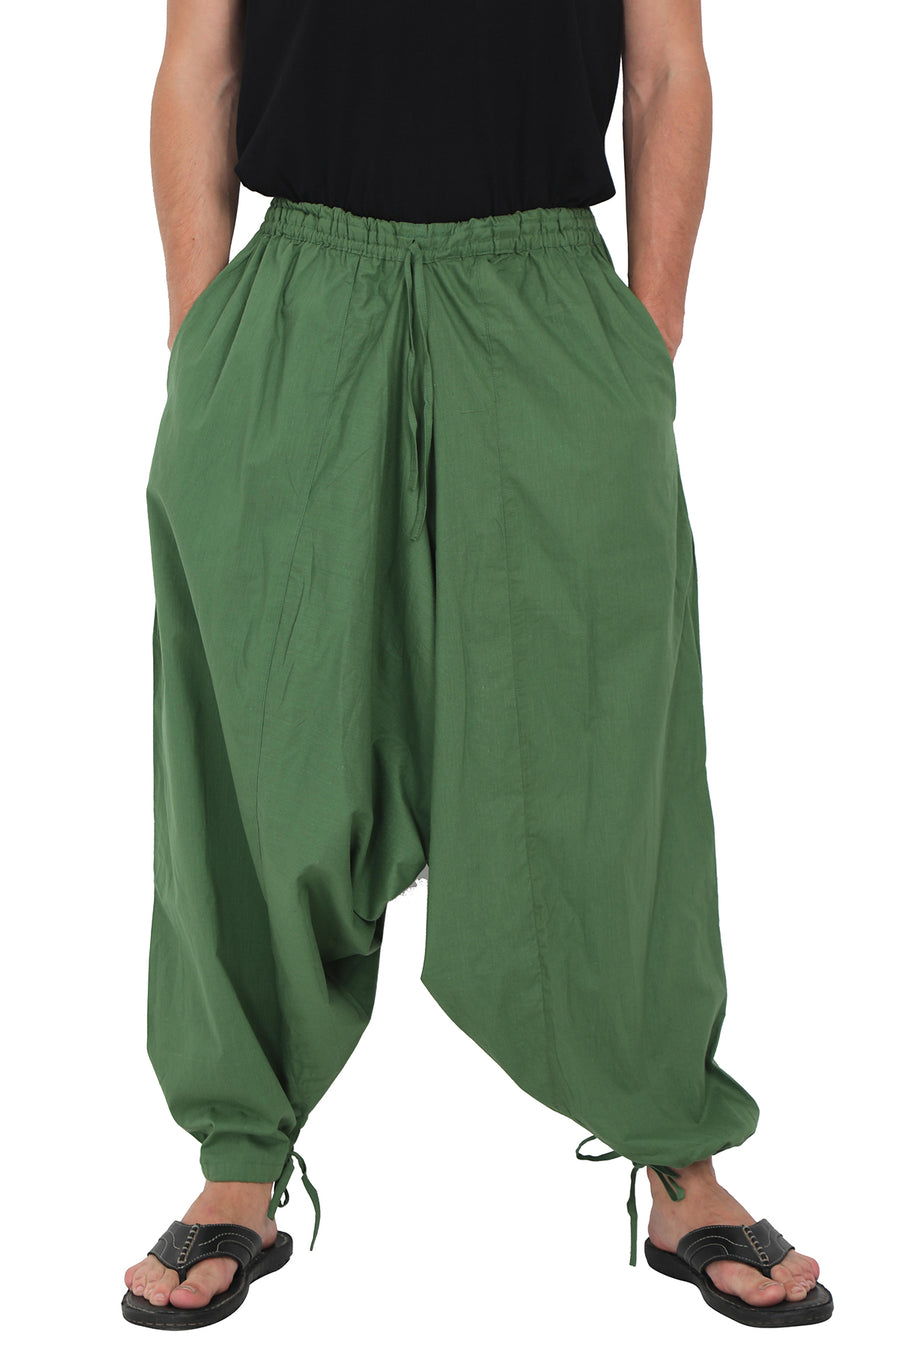 Harem Pants, Green Harem Pants, Men Harem Pants, Women harem Pants, Wide Leg Pants, Show me Hippie Pants, Show me some Mens Harem Pants, Show me some Womens Harem Pants, What is a harem pant, Show me some baggy pants, I want to buy harem pants, cool harem pants, Wide leg harem Pants, Cheap Harem Pants, Show me best harem pants, Highly rated Harem Pants, Sarouel, Haremshose, Afgani Pants, One Size Fits All Pants,Show me  XXXL Pants , Samurai Pants, MC Hammer Pants, Dance Pants, Yoga Pants, Drop Crotch Pants